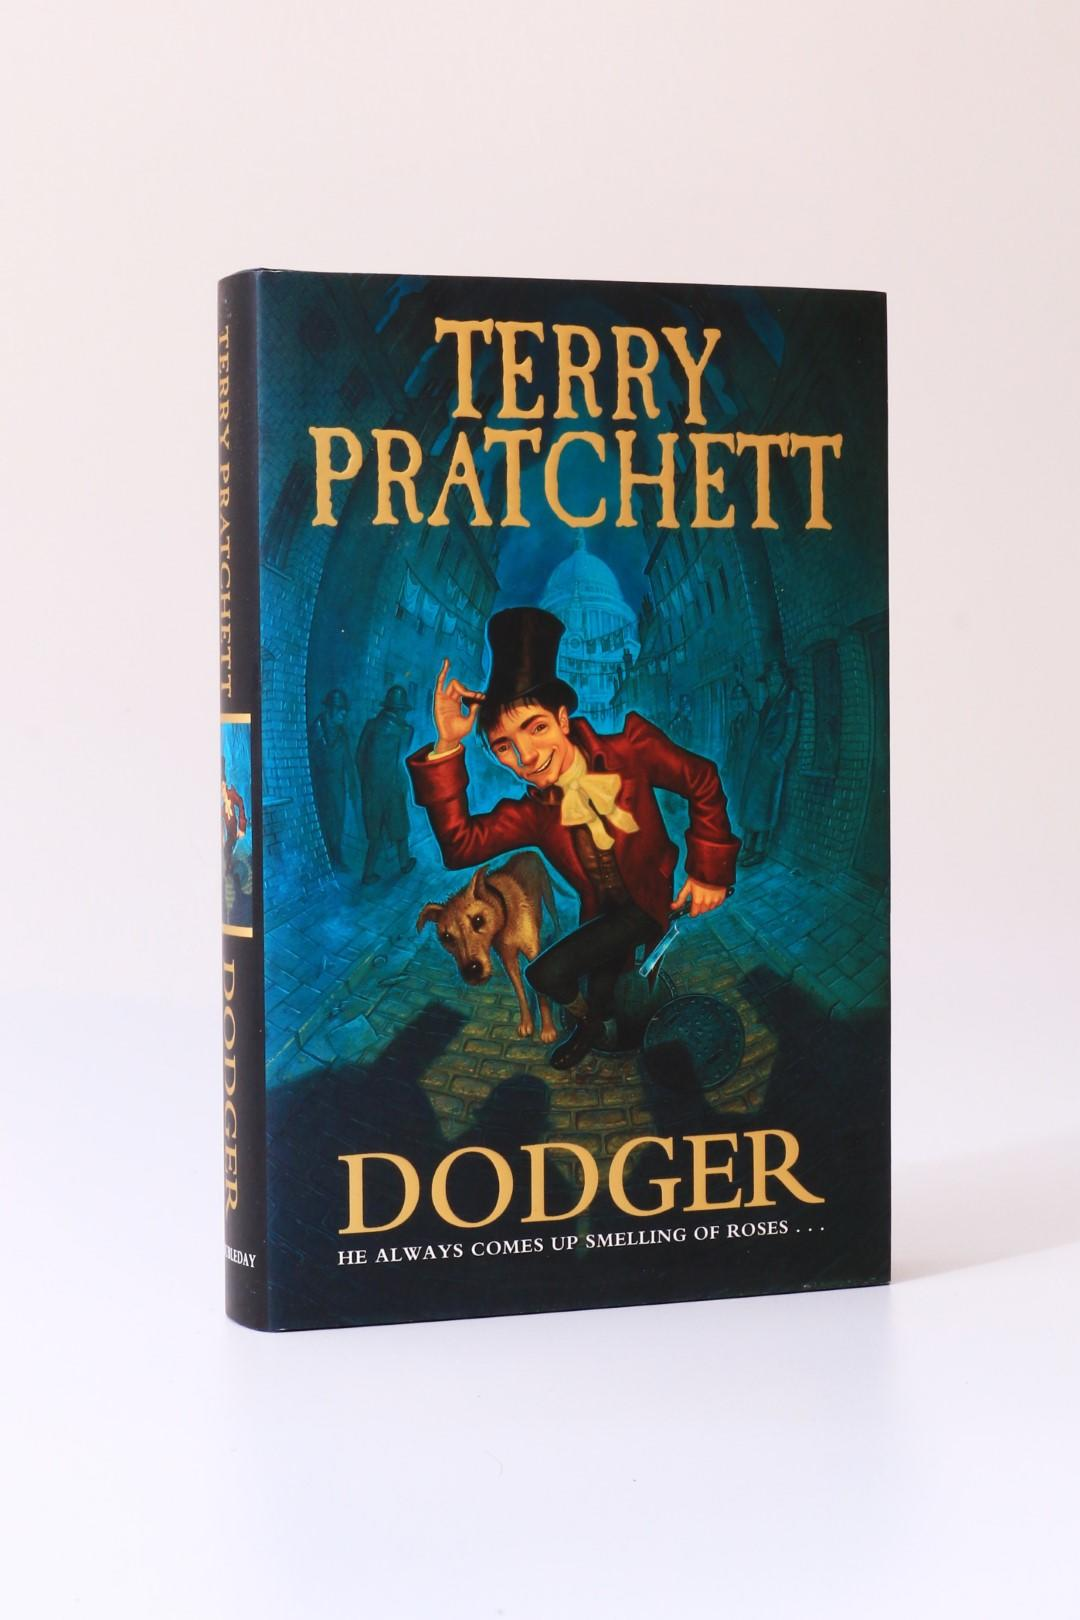 Terry Pratchett - Dodger - Doubleday, 2012, First Edition.